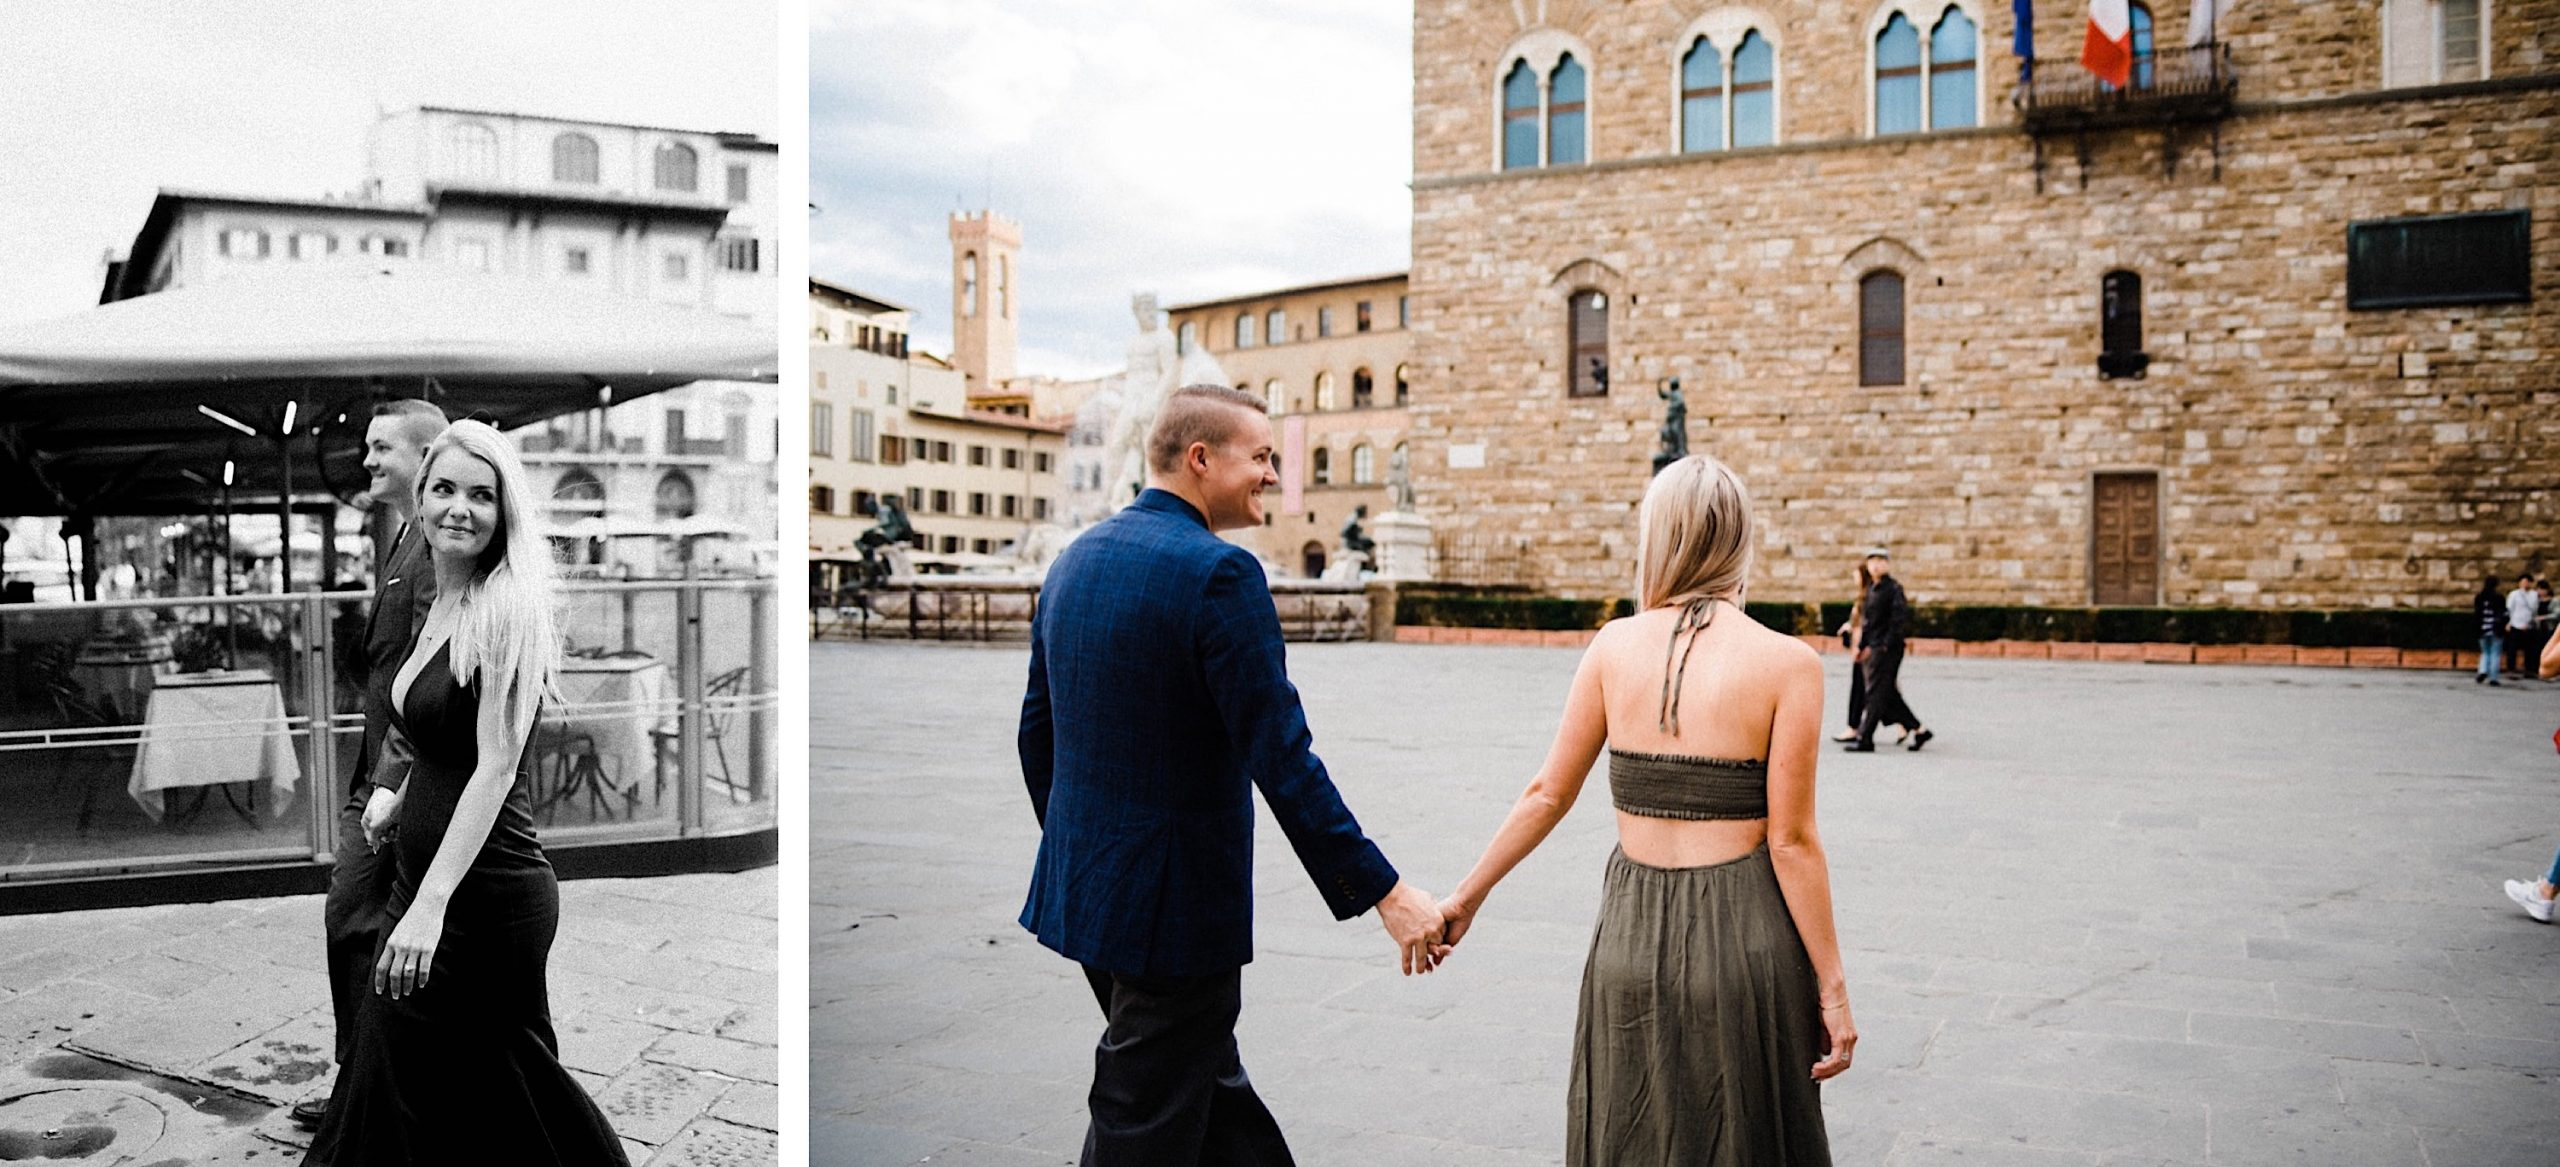 Two photos of a couple walking through the Piazza della Signoria in Florence, with buildings in the background. The photo on the left is black & white.